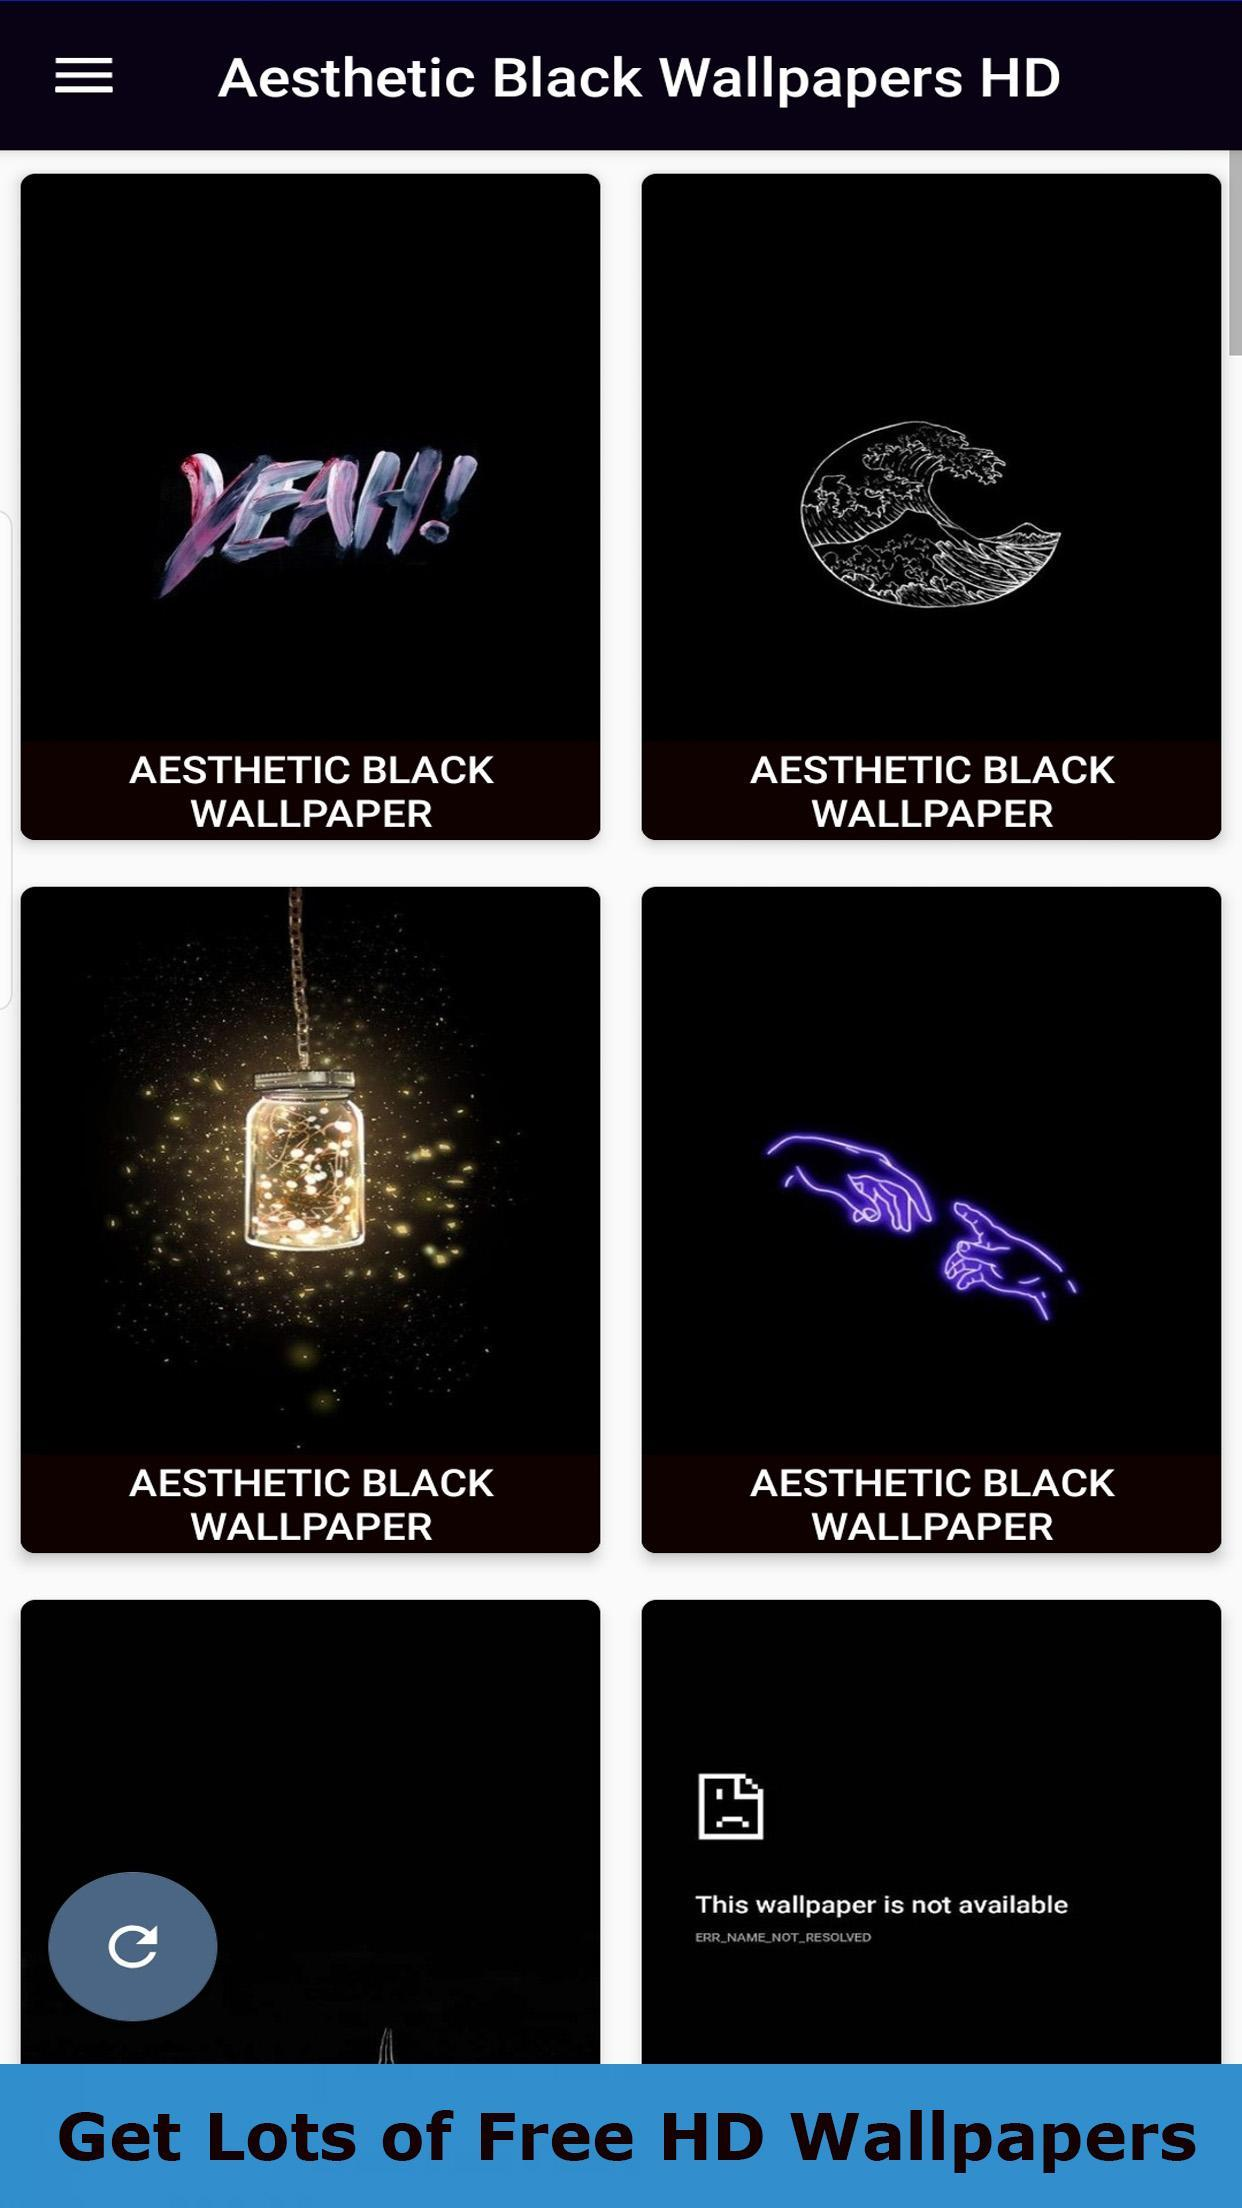 Aesthetic Black Wallpaper Hd For Android Apk Download